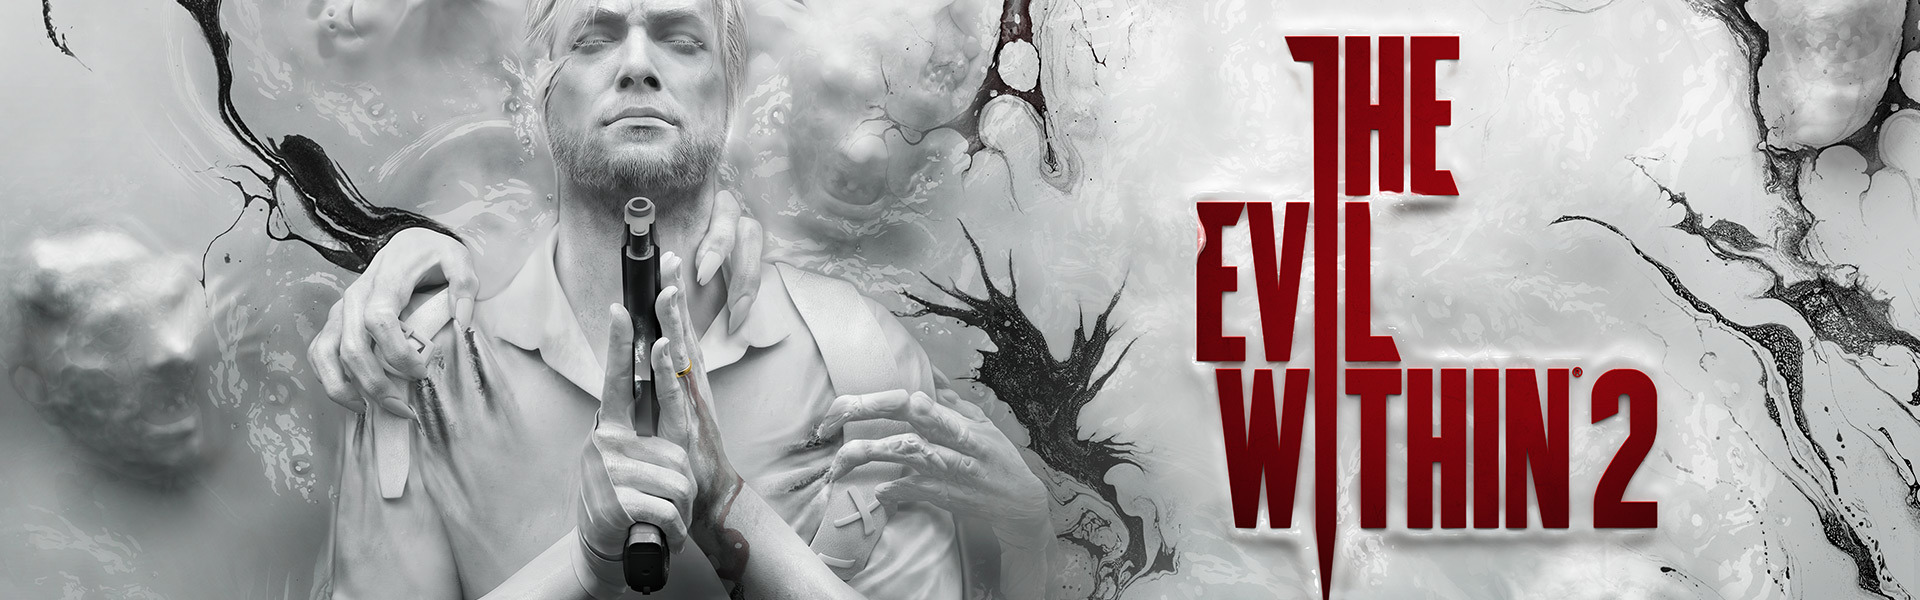 Evil Within 2 Hero